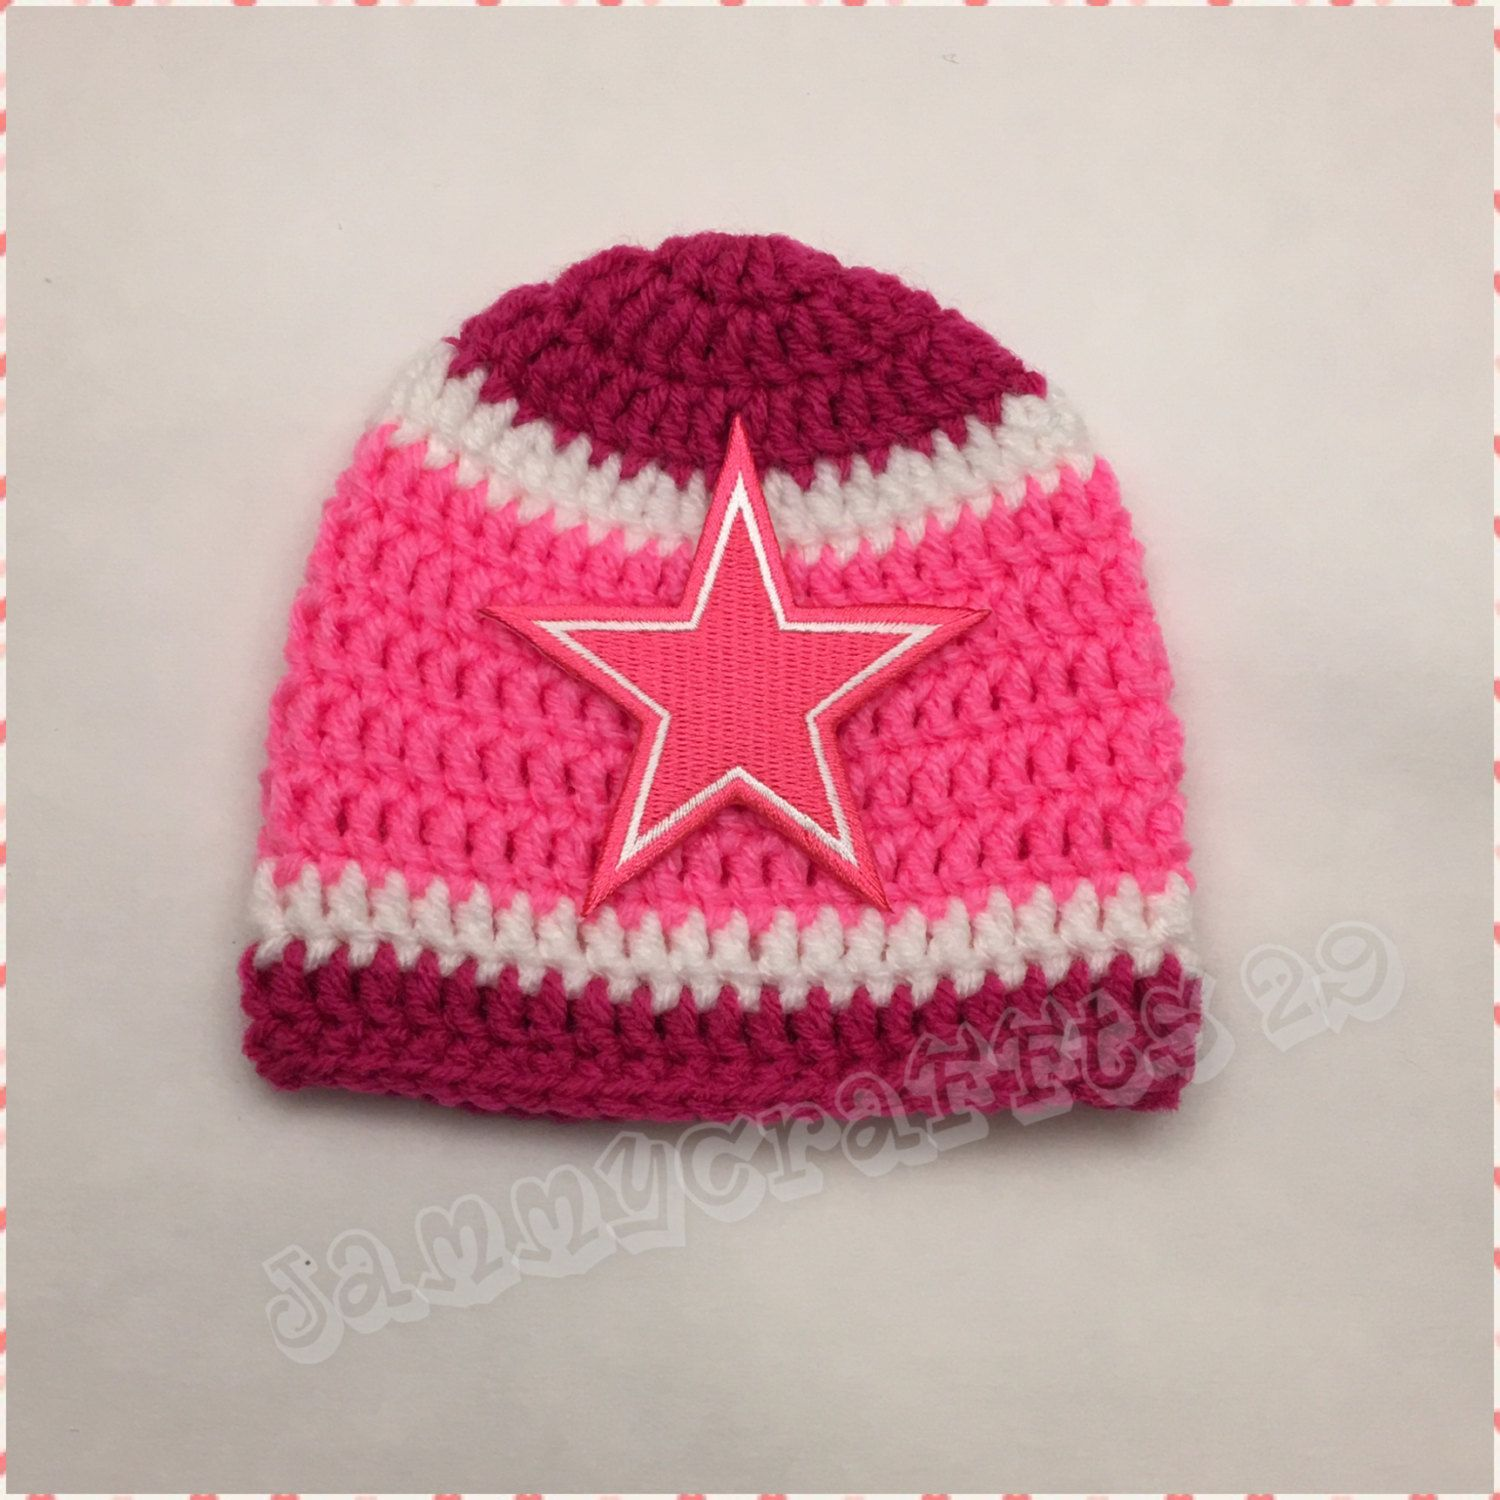 532363ddb Crochet Baby Girl Football Hat/Football Beanie/Baby Girls/Pink Style/Dallas  Cowboys/Houston Texans/Seattle Seahawks/Choose Your Team by JAMMYCRAFFTS29  on ...